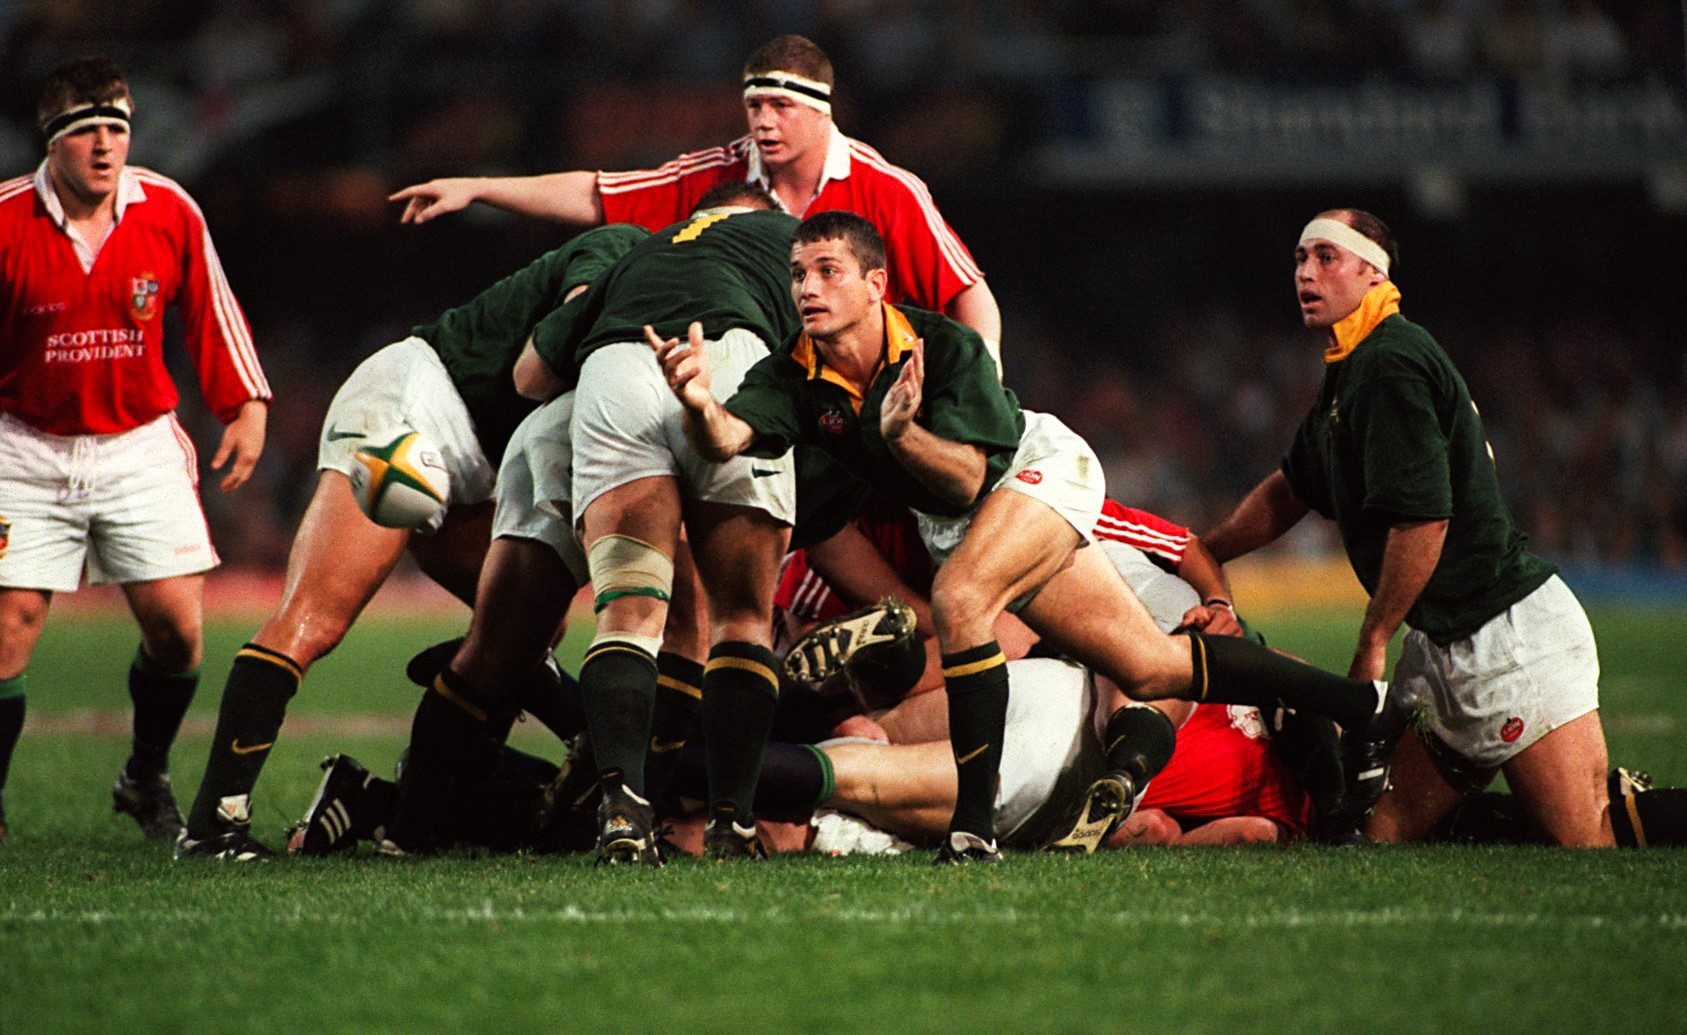 Joost Van der Westhuizen (South Africa) vs Lions